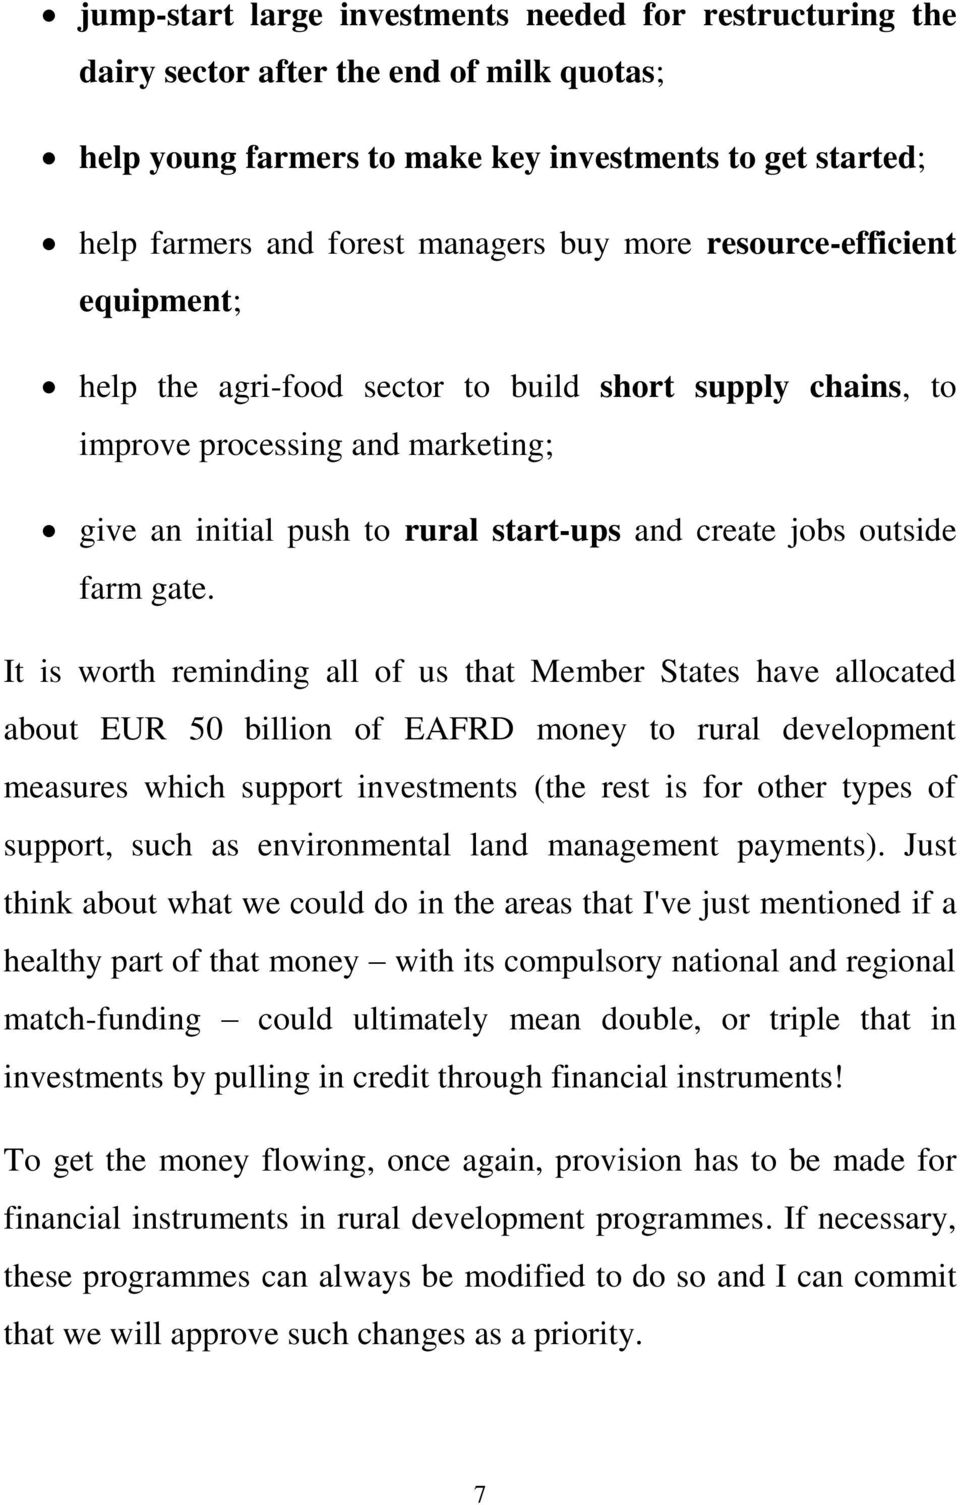 gate. It is worth reminding all of us that Member States have allocated about EUR 50 billion of EAFRD money to rural development measures which support investments (the rest is for other types of